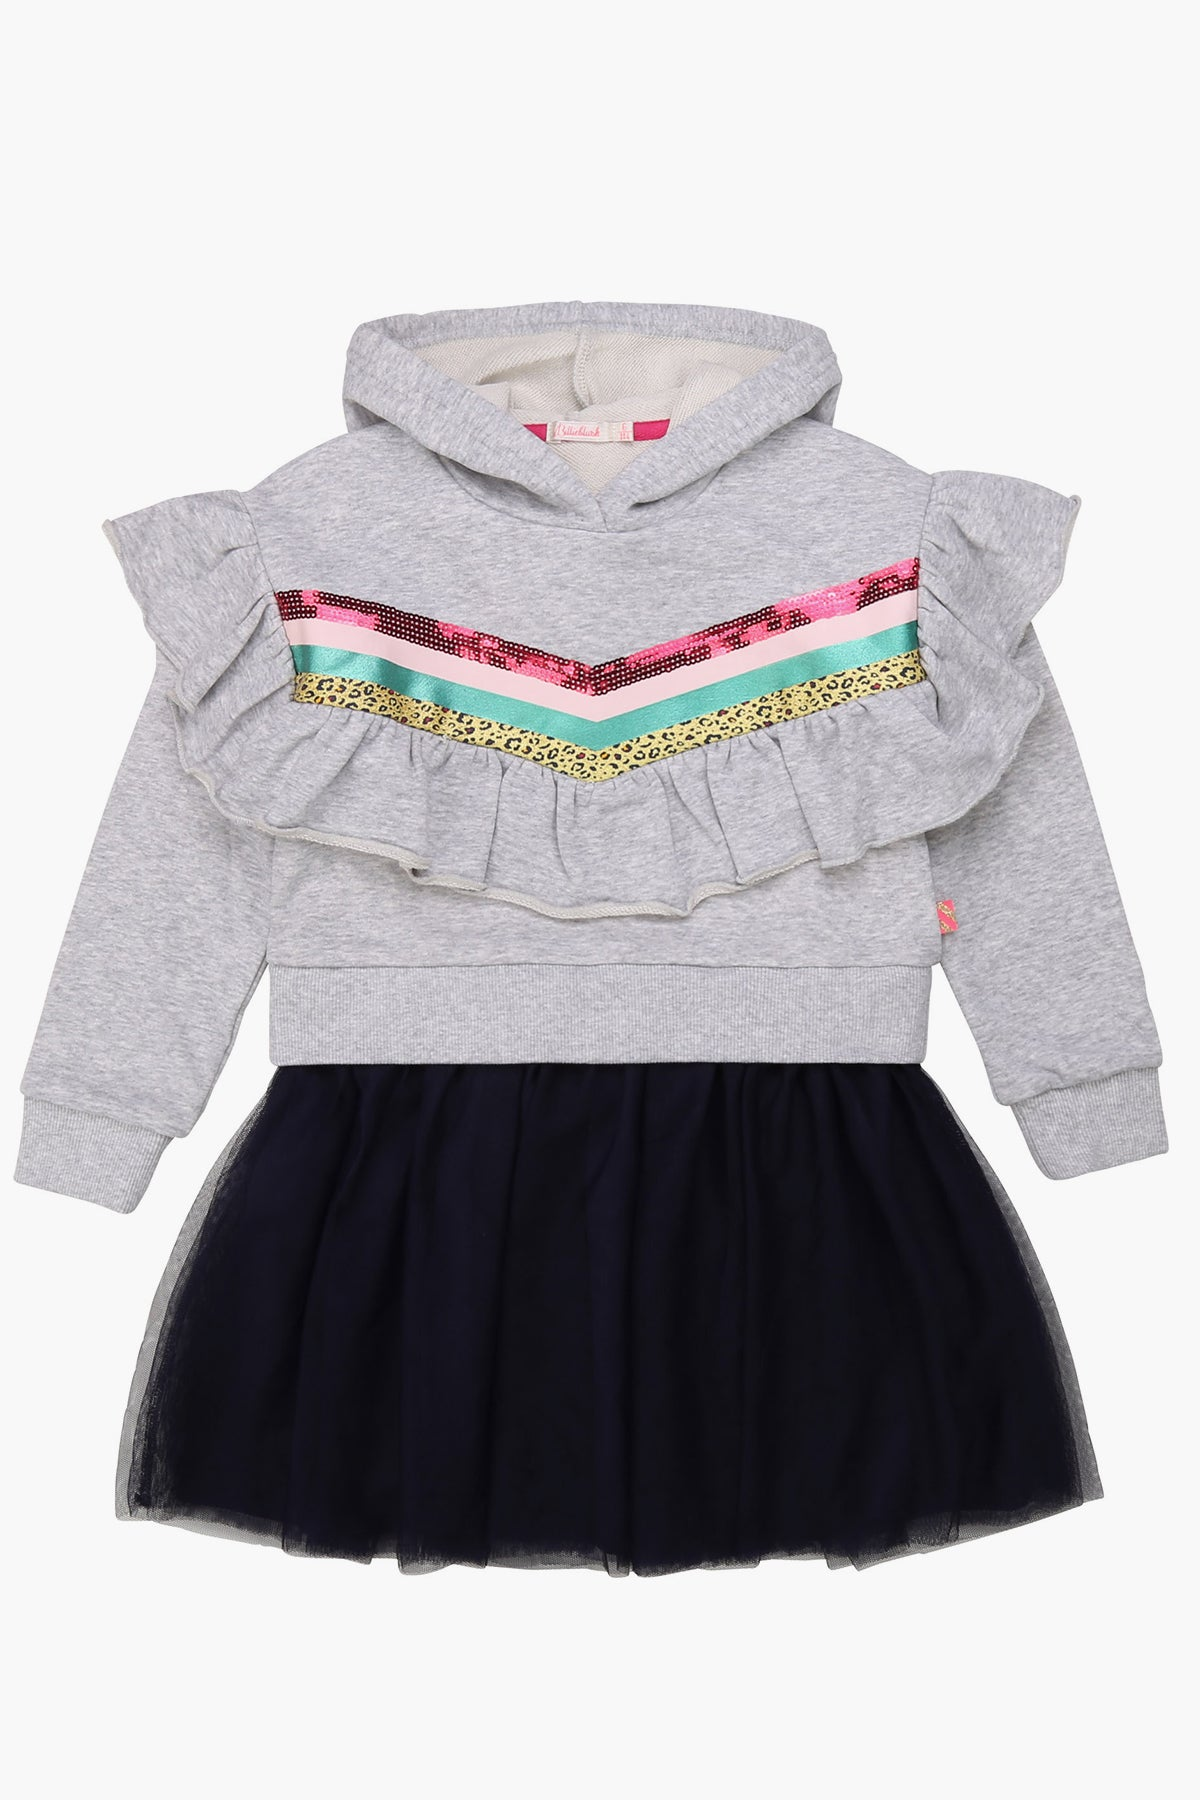 Billieblush Hooded Party Girls Dress